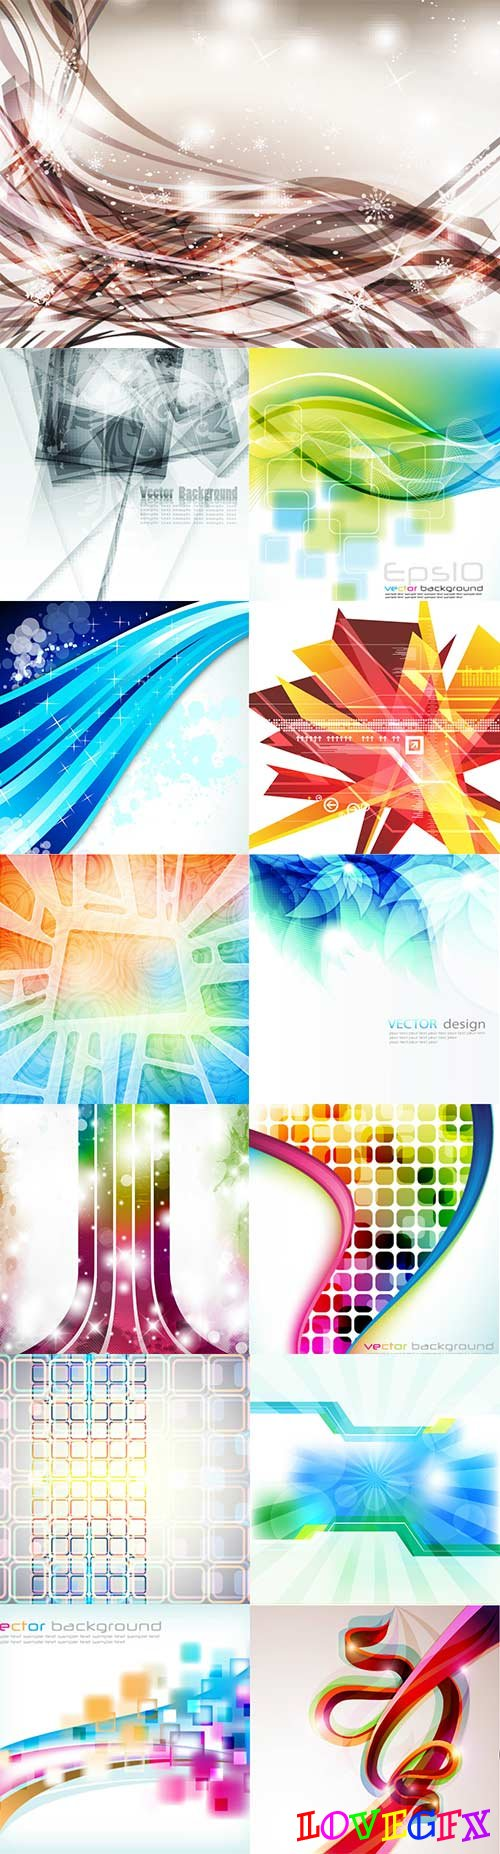 Bright colorful abstract backgrounds vector - 63